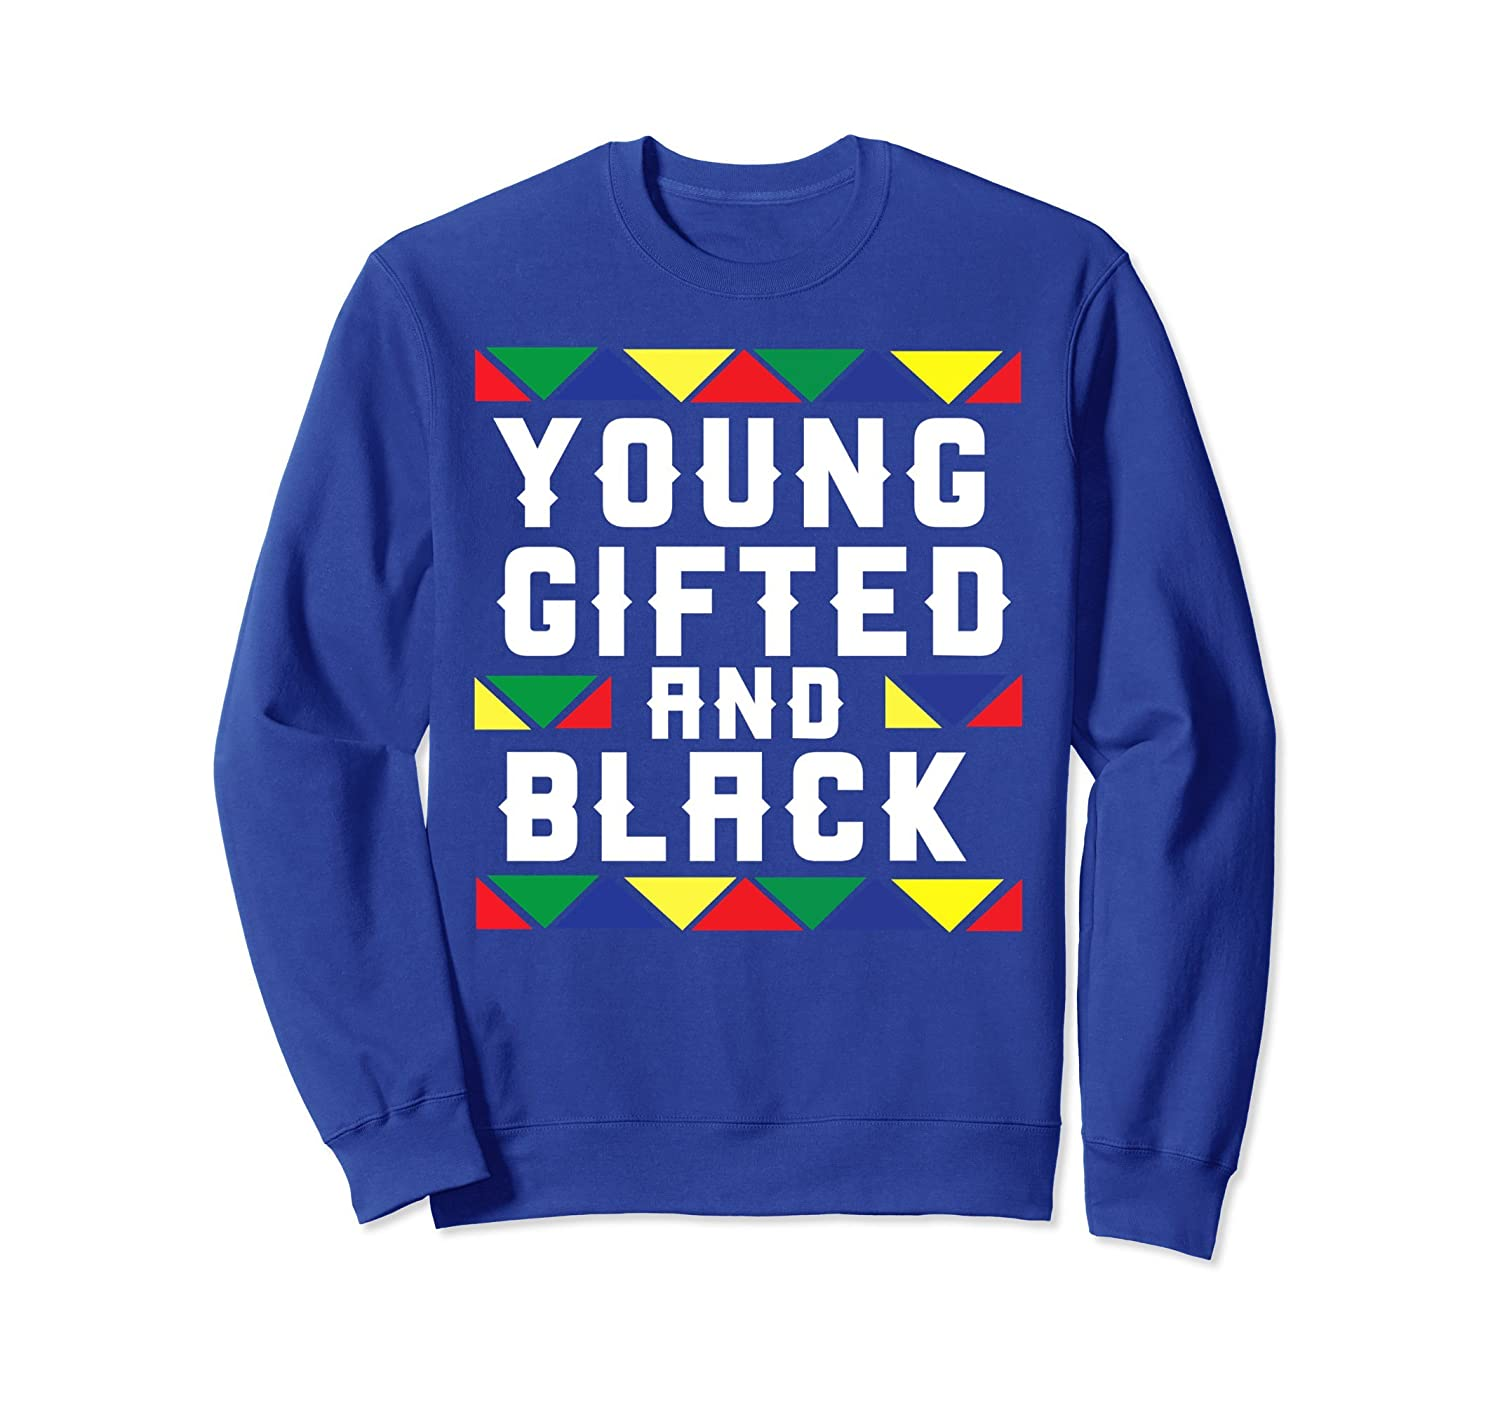 Young Gifted And Black Sweatshirt - Cool Sweatshirts or Gift-TH